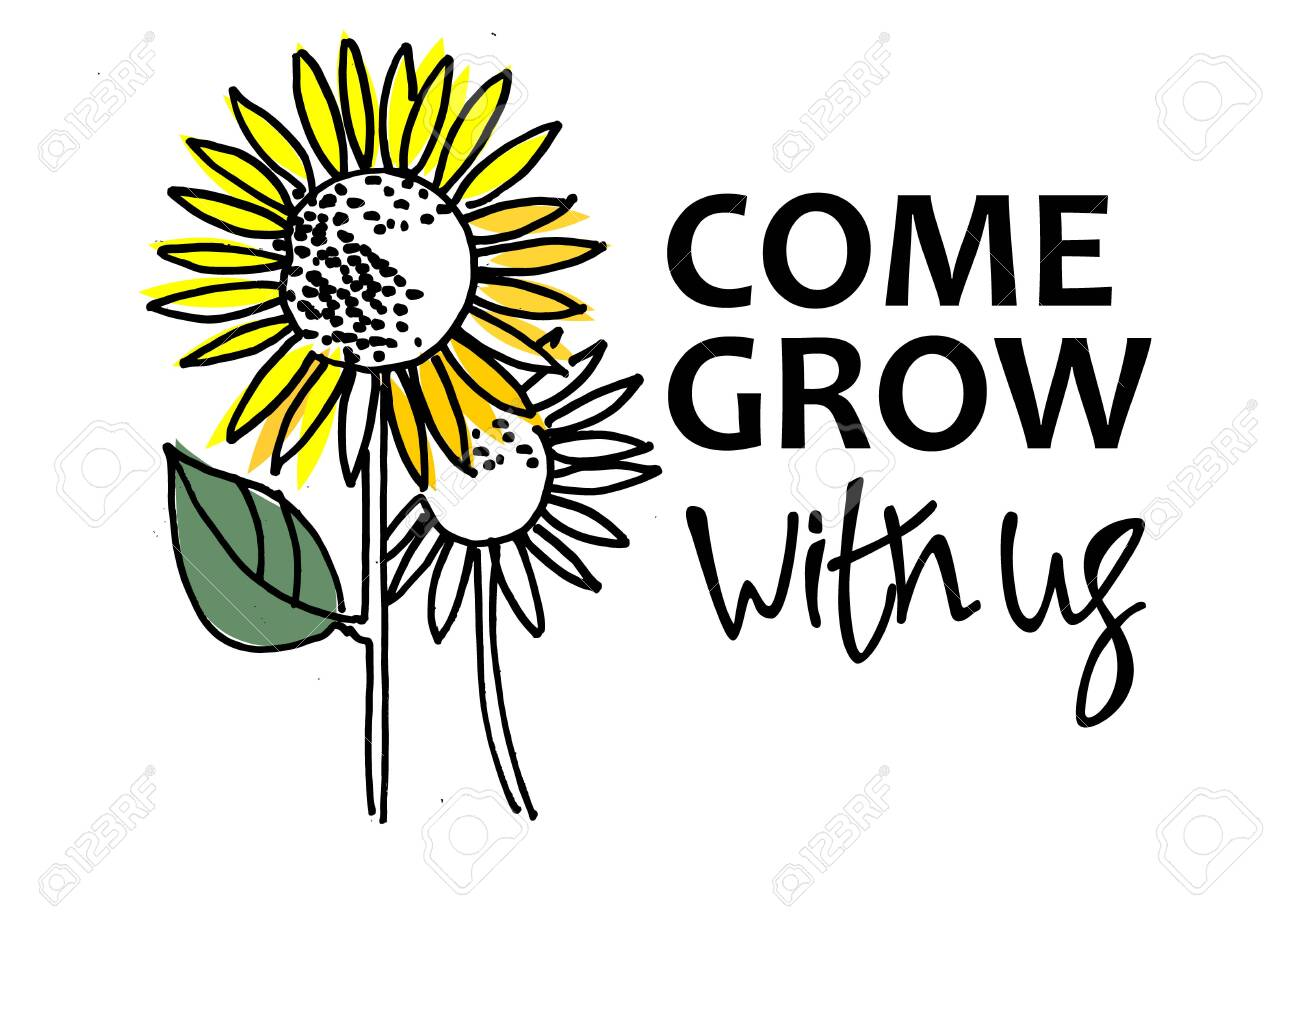 Come grow with us. Recruitment, teambuilding and personal growth concept. Sunflowers, one of them is bigger and colorful. Type and hand lettering on the right. Isolated on white background - 127039385